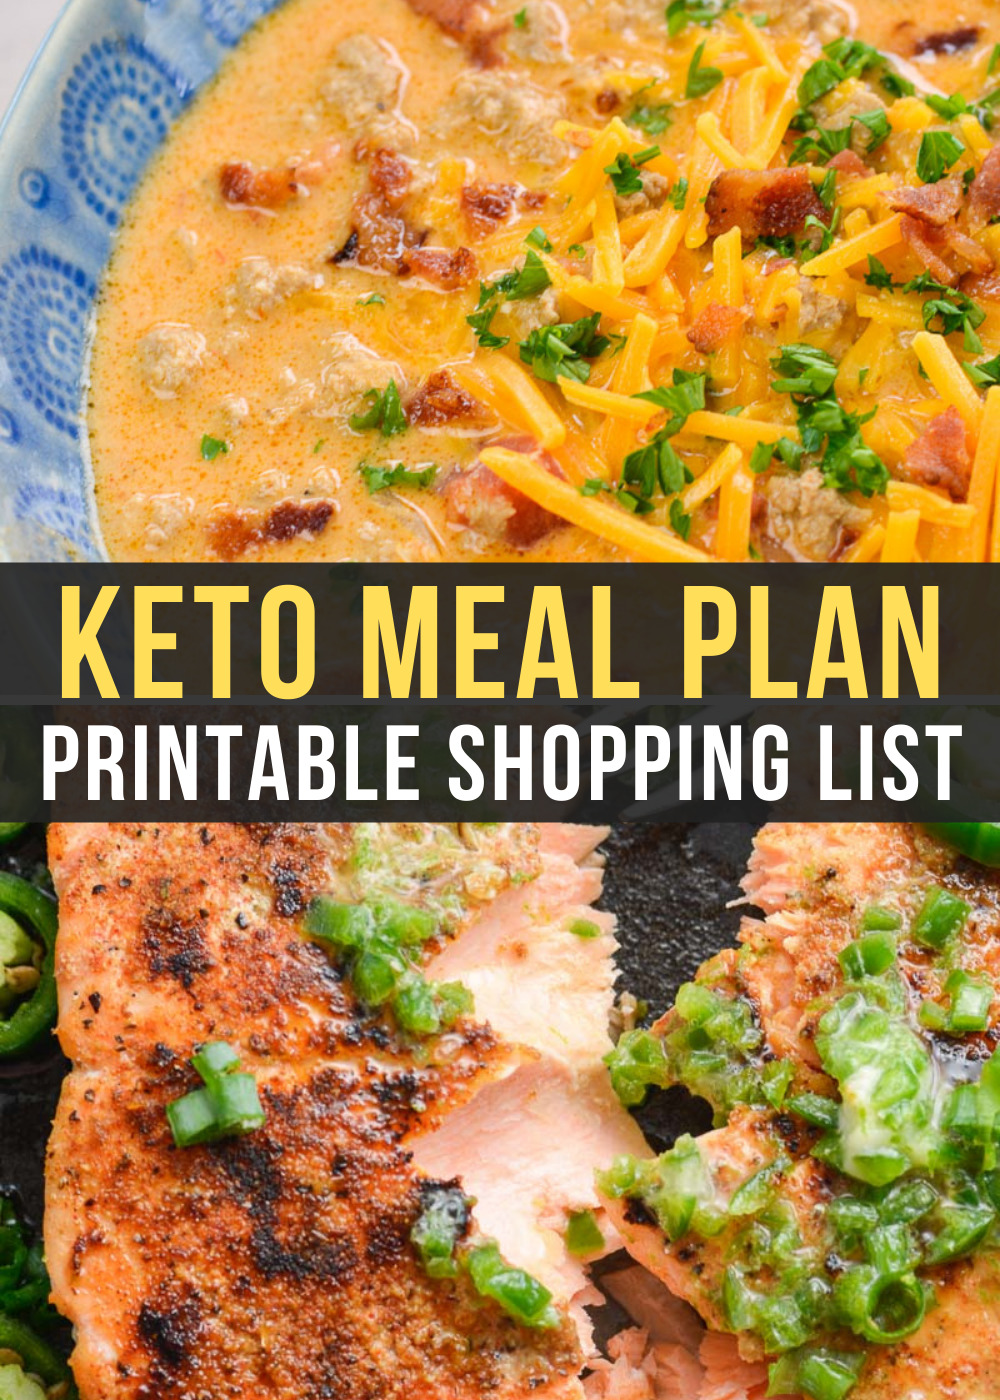 Week 18 of the Easy Keto Meal Plan includes delicious favorites like Keto Bacon Cheeseburger Soup and low carb roasted salmon with jalapeno lime butter.